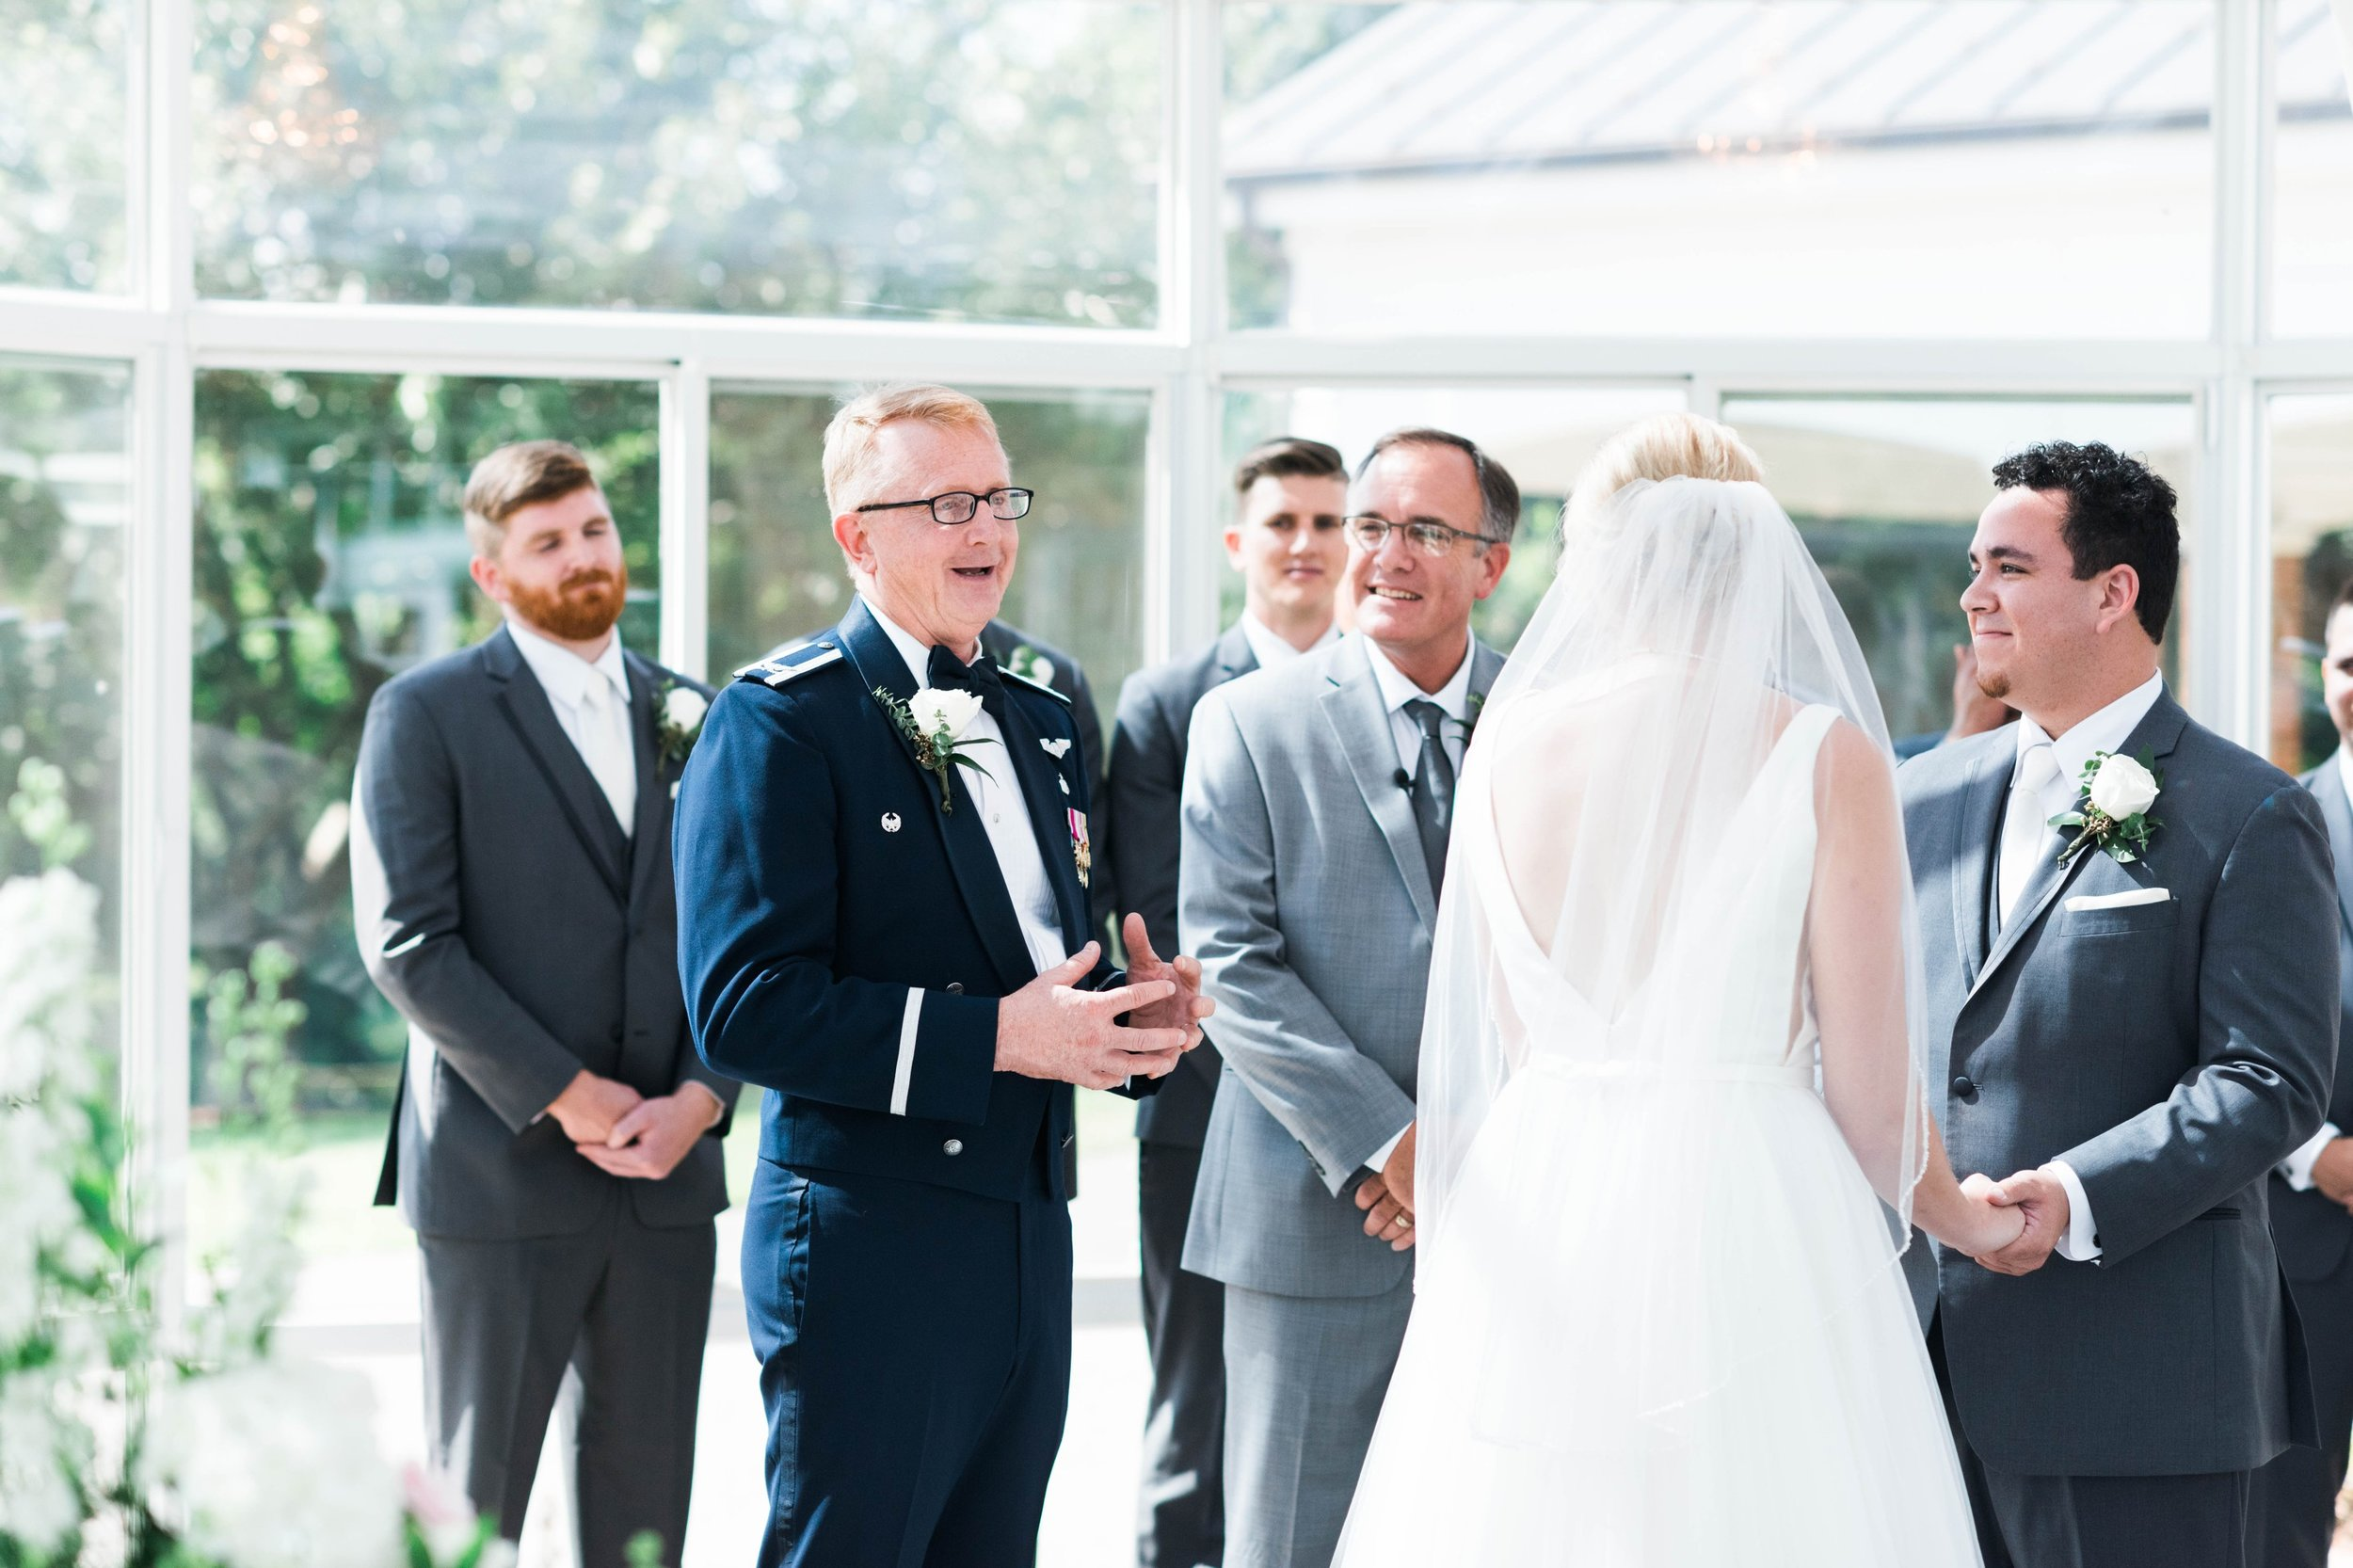 westmanorestate_entwinedevents_lynchburgweddingphotographer_Virginiaweddingphotographer_kateyam 28.jpg